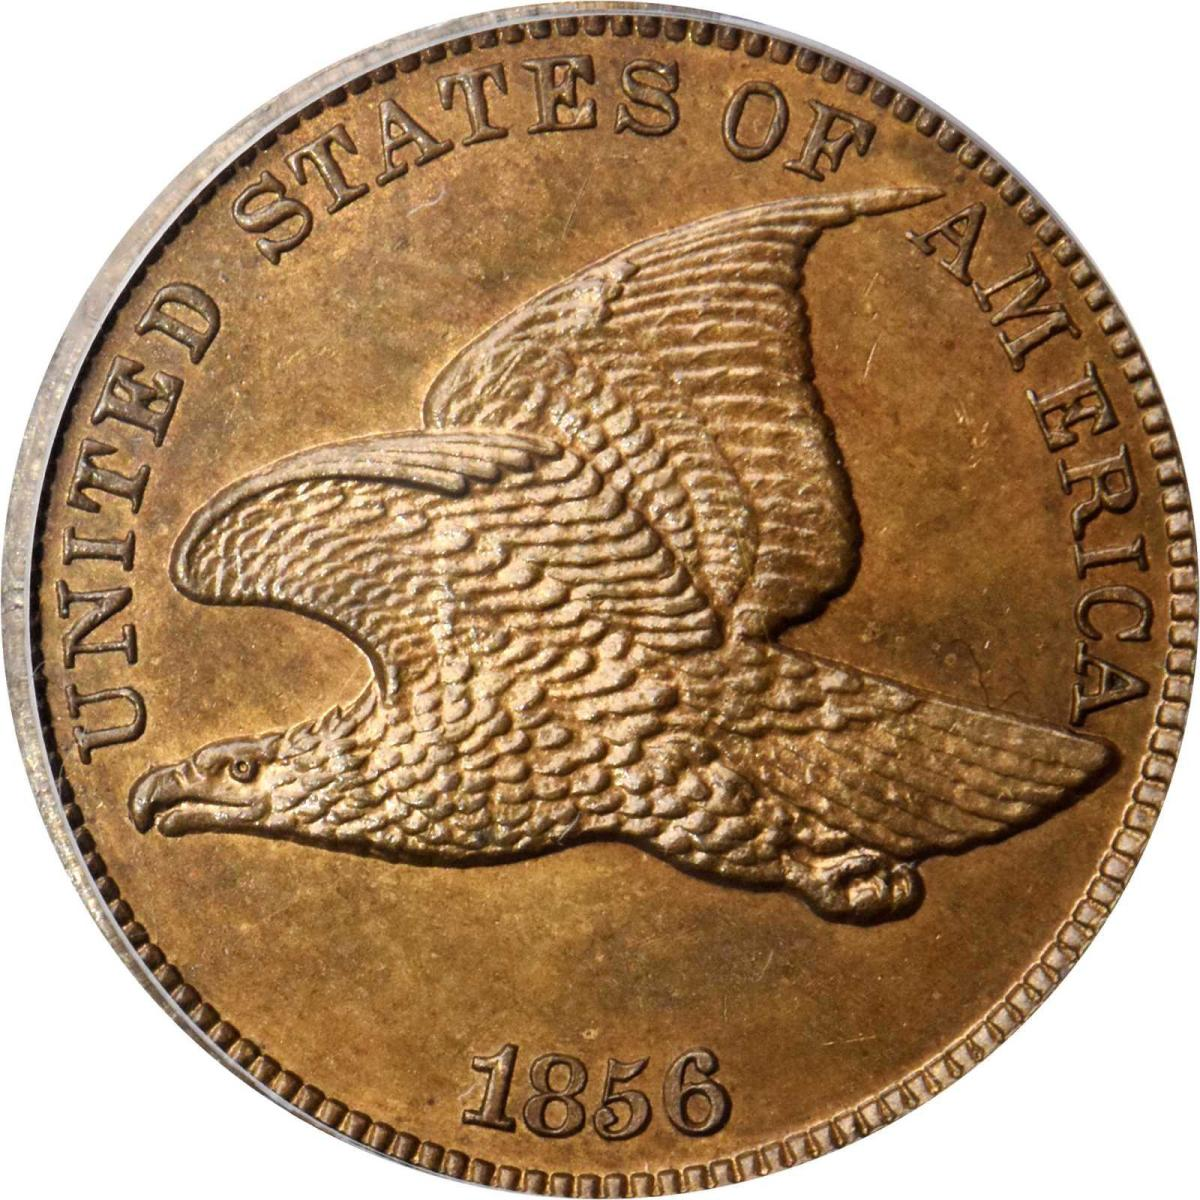 Shown is the 1856 Flying Eagle Cent. Snow-9. Proof-65 (PCGS) being offered at the 2019 Baltimore Expo. (Image courtesy of Stack's Bowers.)